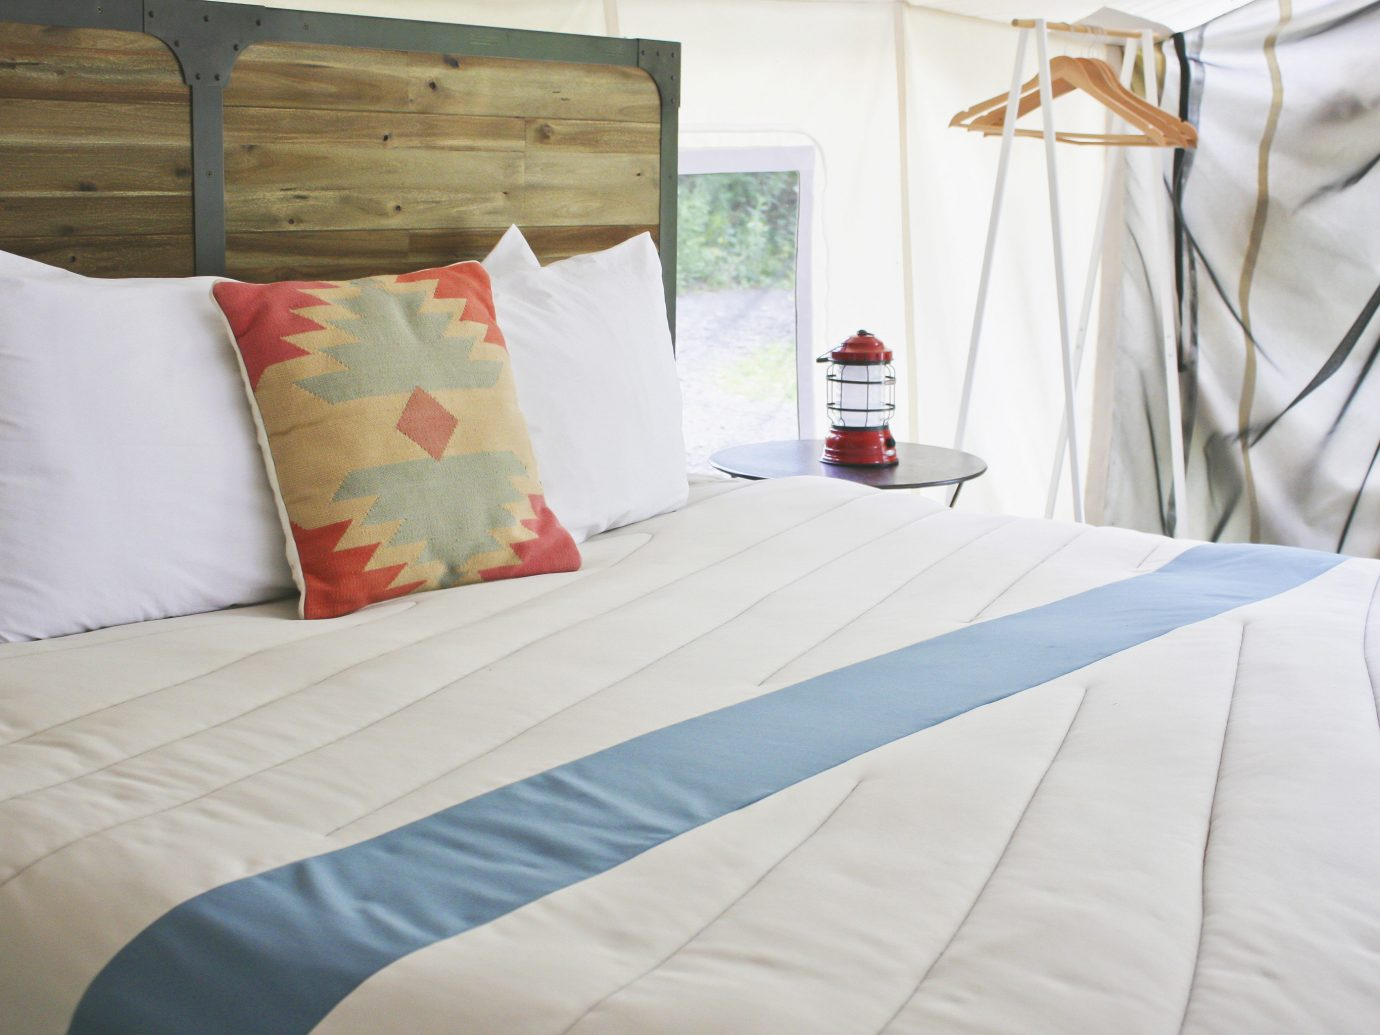 Glamping Luxury Travel Trip Ideas bed indoor bed sheet pillow room Bedroom duvet cover bedding bed frame textile home mattress linens furniture floor interior design Suite cushion hotel bedclothes mattress pad product comfort window